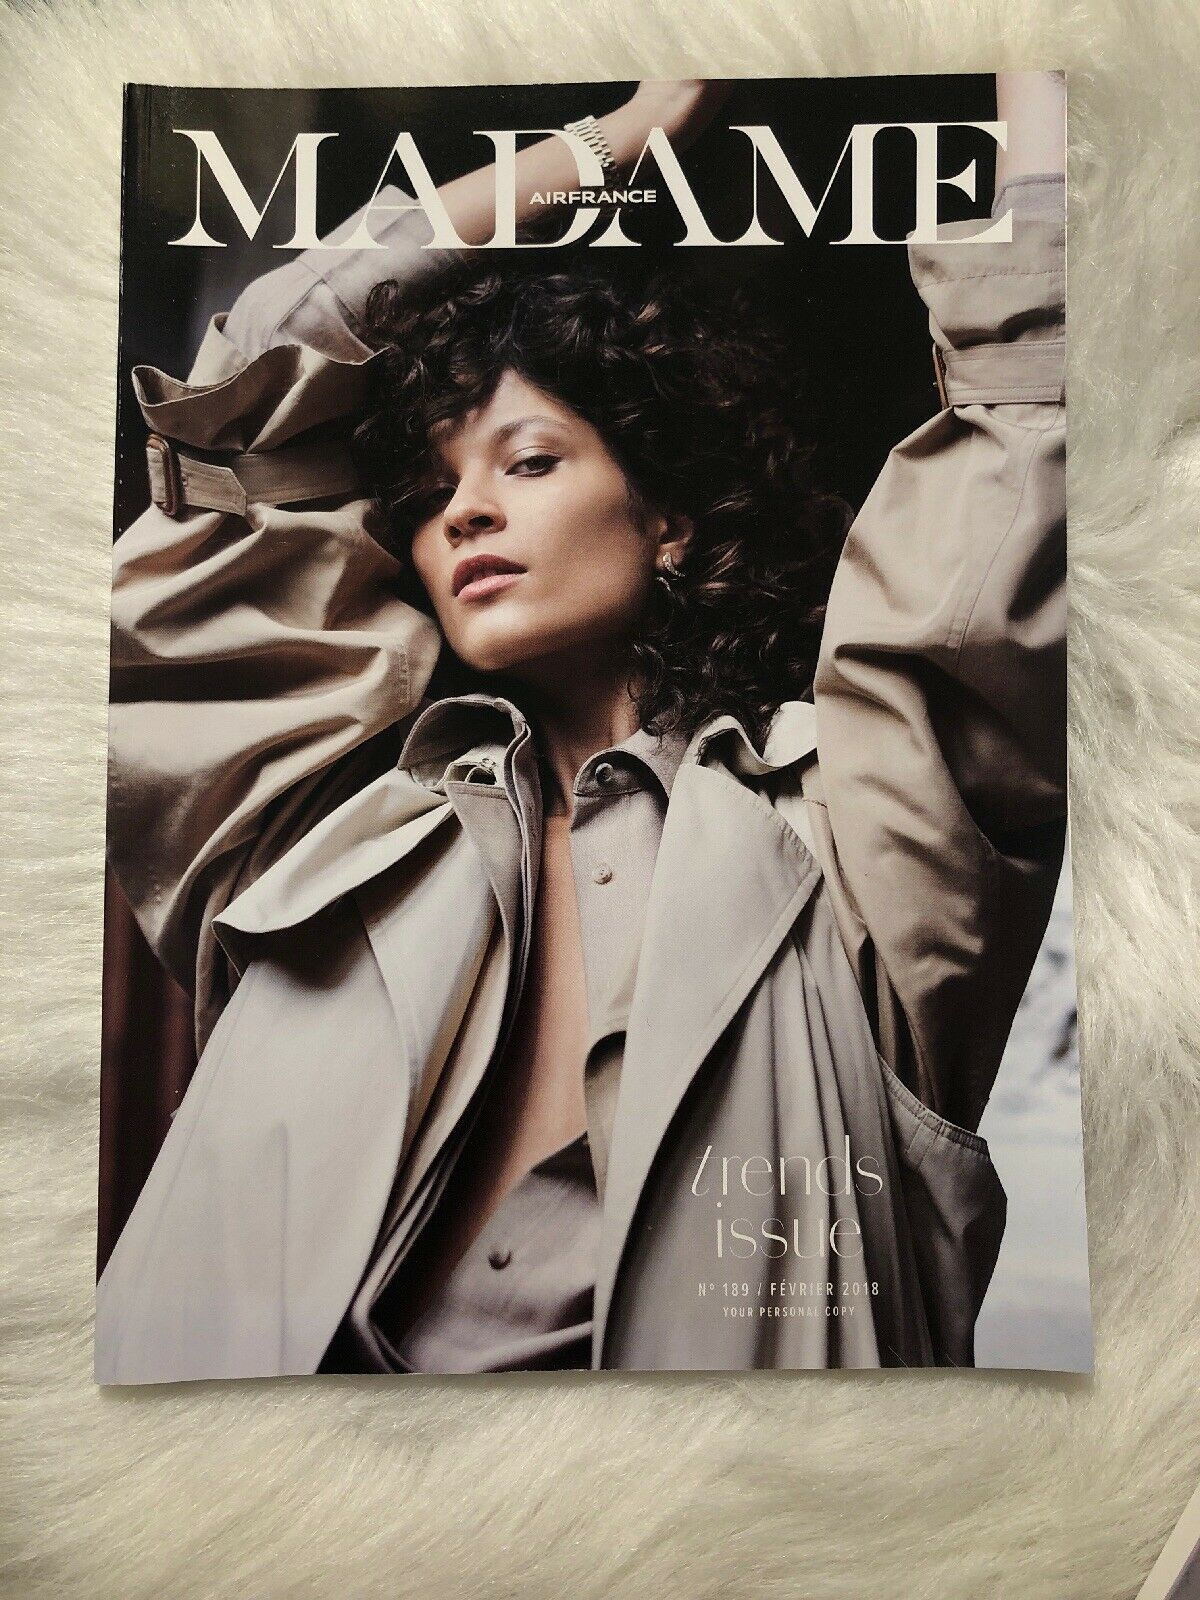 Primary image for NEW MADAME AIR FRANCE IN FLIGHT ON BOARD MAGAZINE February 2018 #189